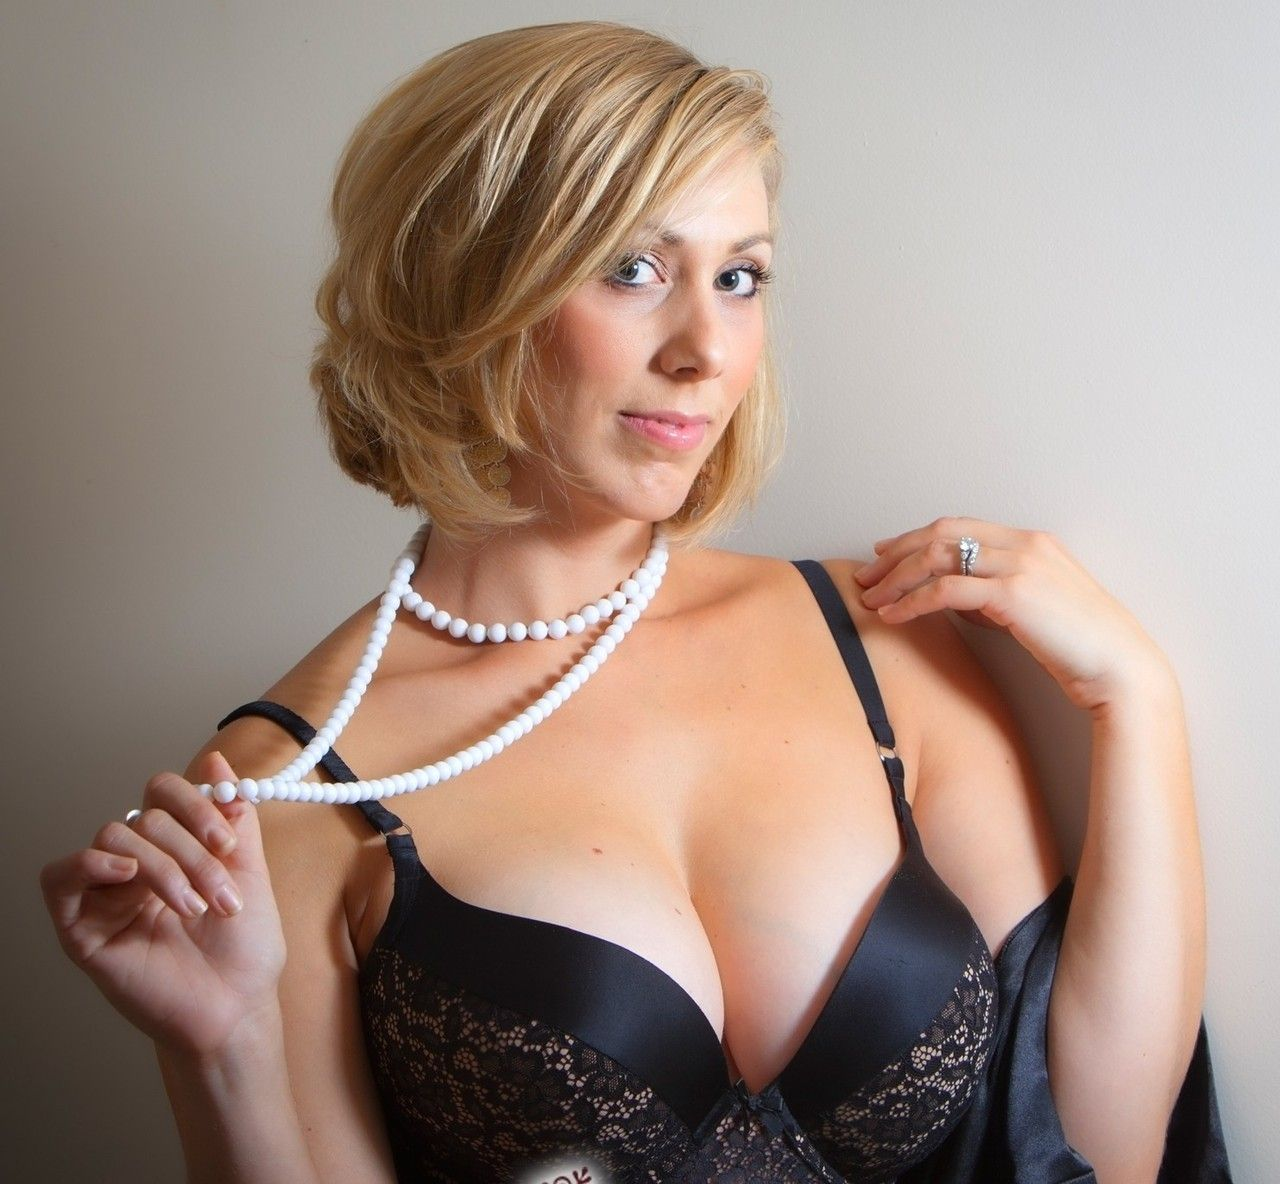 Busty woman in cafe stock photo